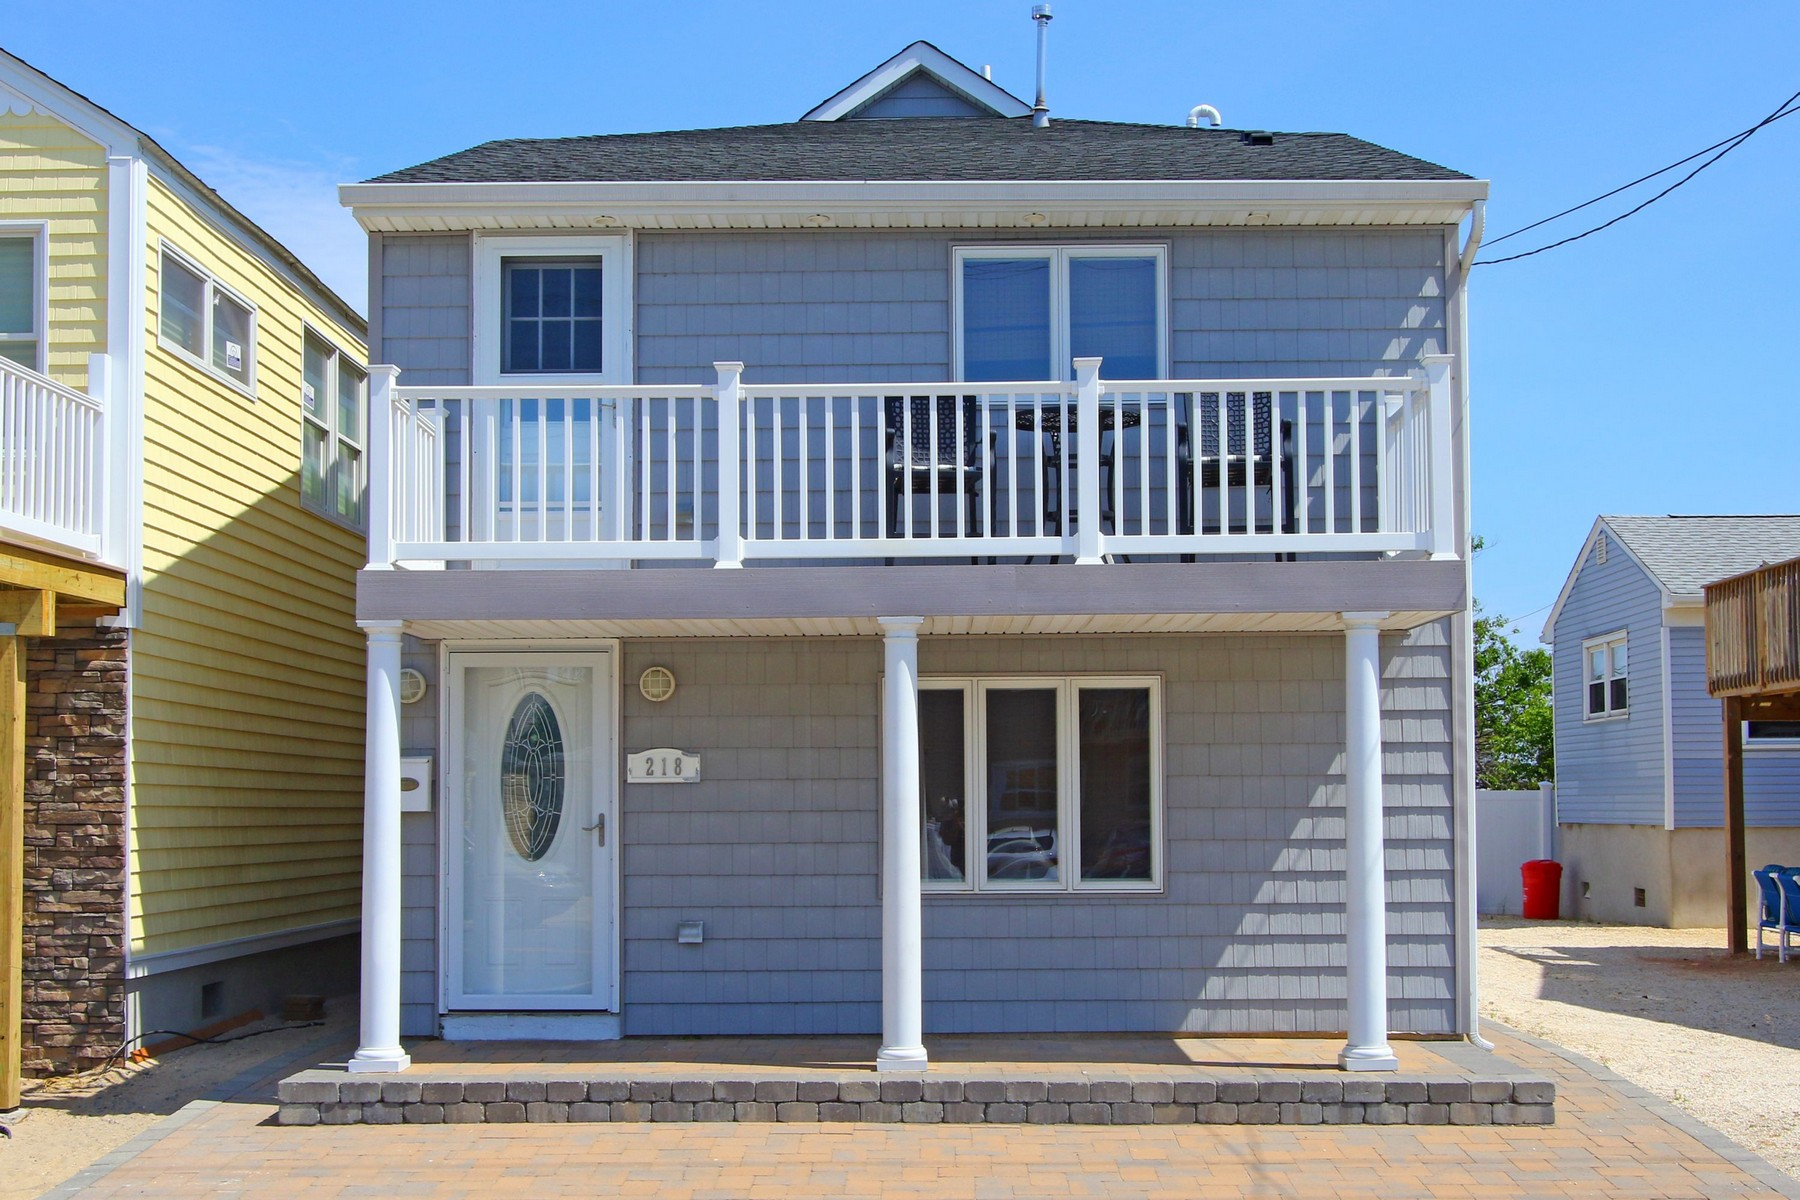 Casa Unifamiliar por un Venta en 218 Hiering Ave Seaside Heights, Nueva Jersey 08751 Estados Unidos